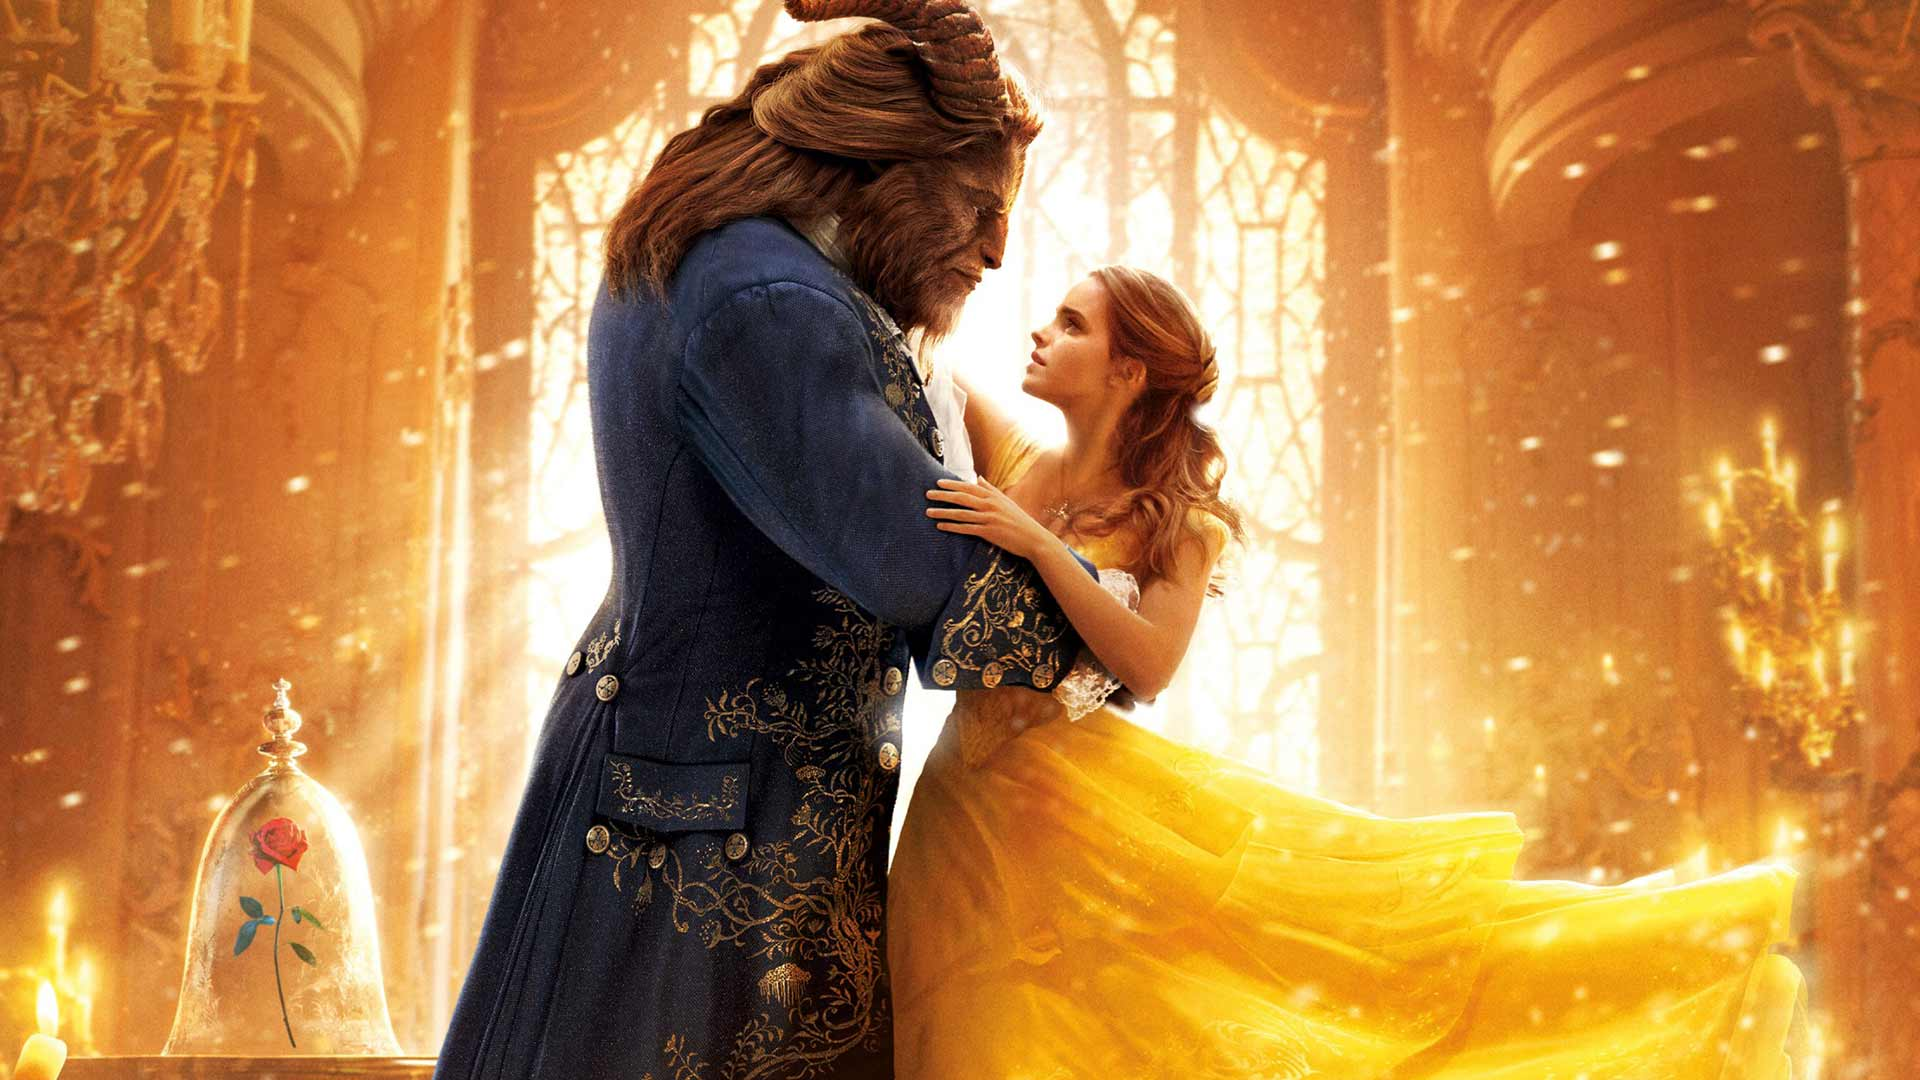 rereleased beauty and the beast